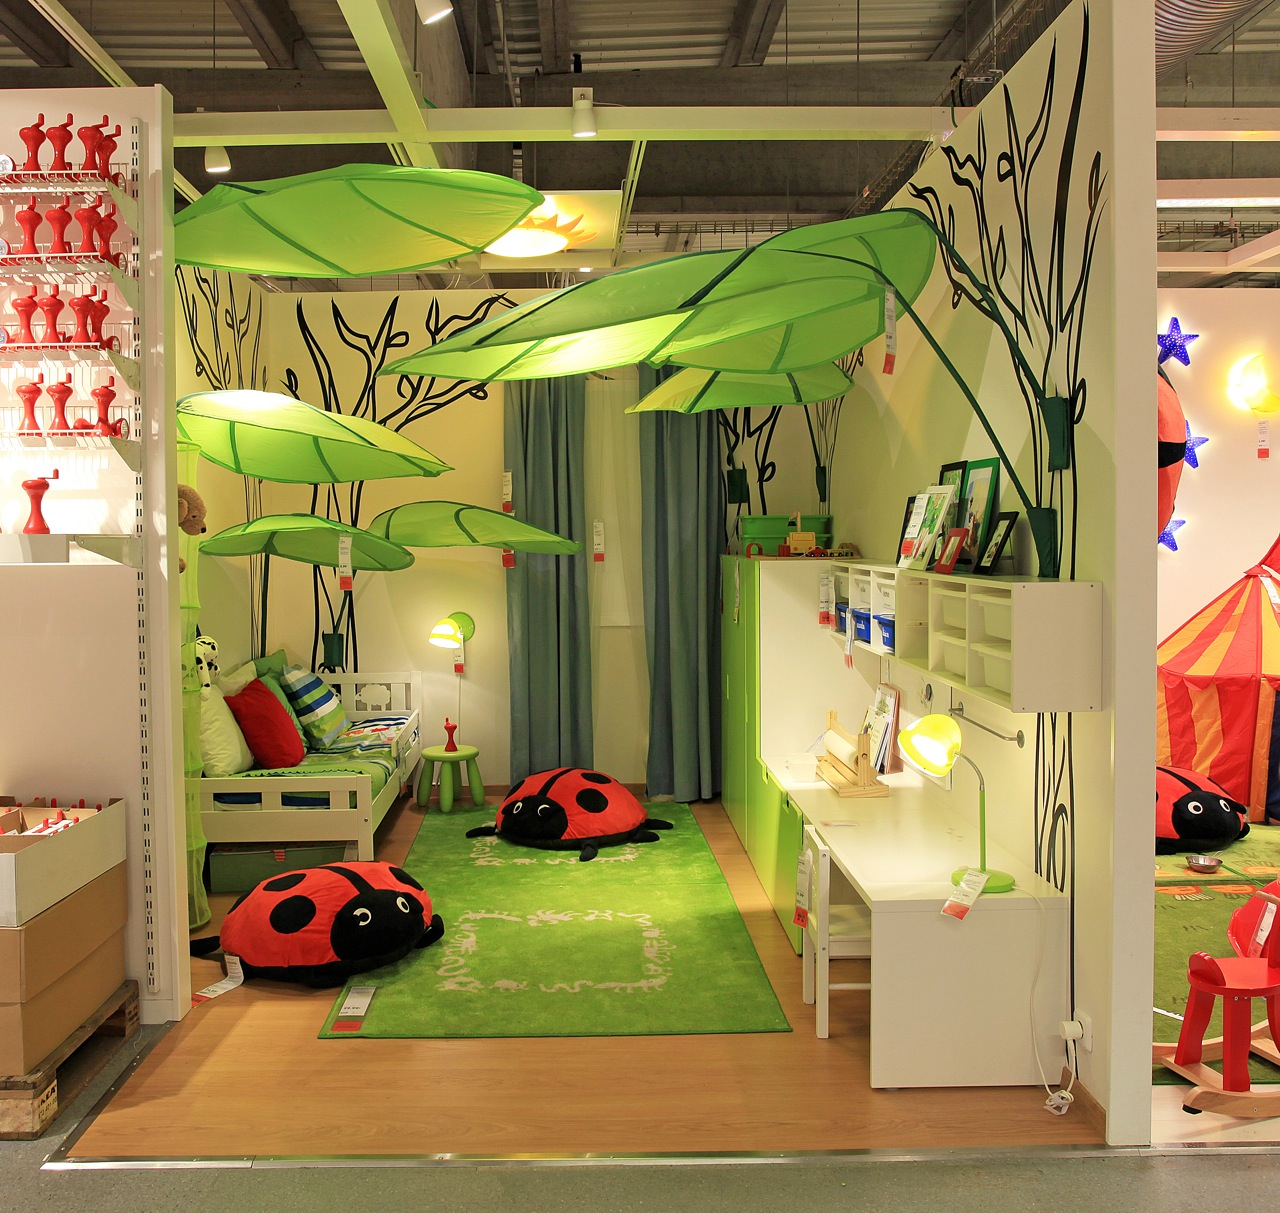 Tiendas de decoraci n infantil imprescindibles mellimama for Jaulas decoracion ikea